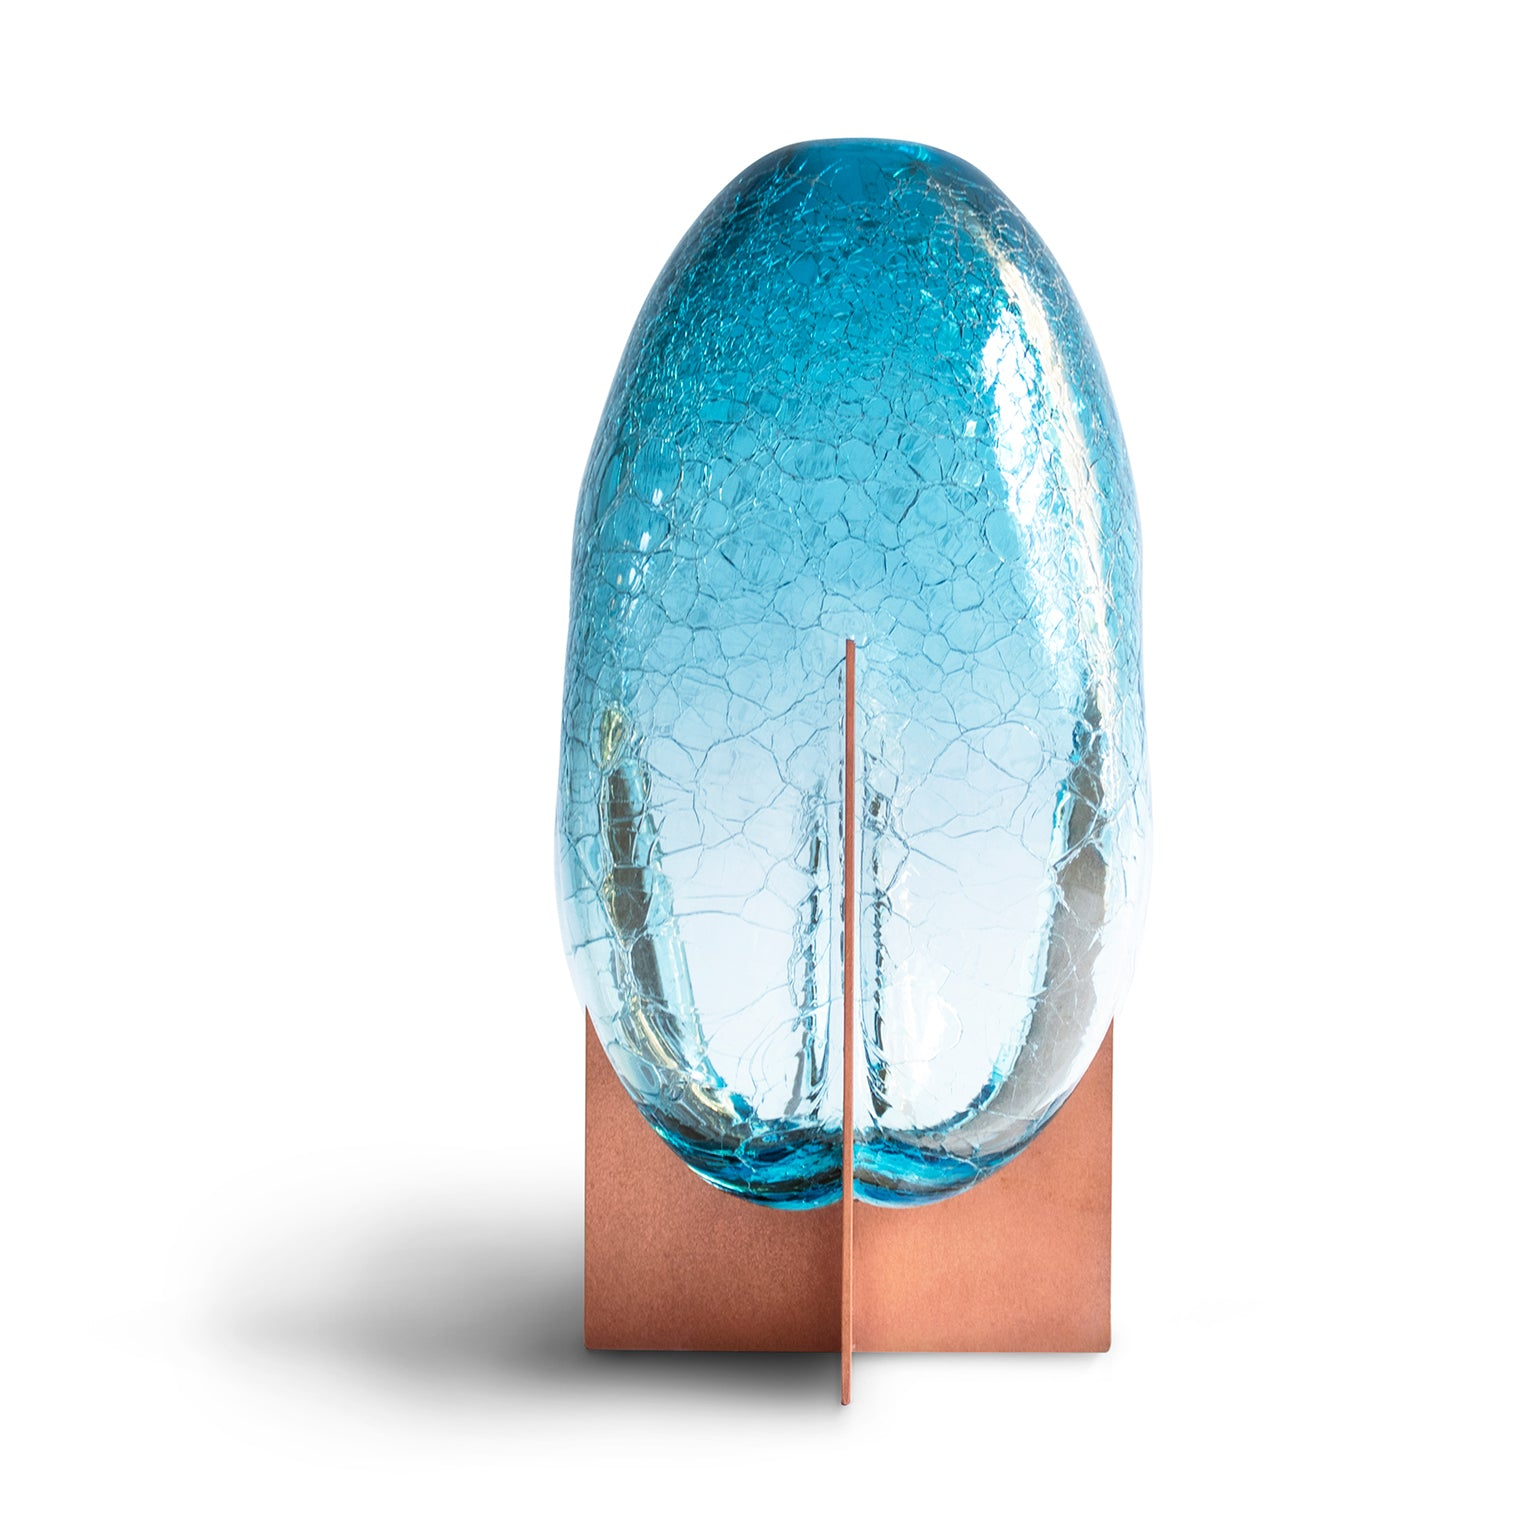 Venturi Pear Blue Crackle Vase </br> Murano Glass and Metal